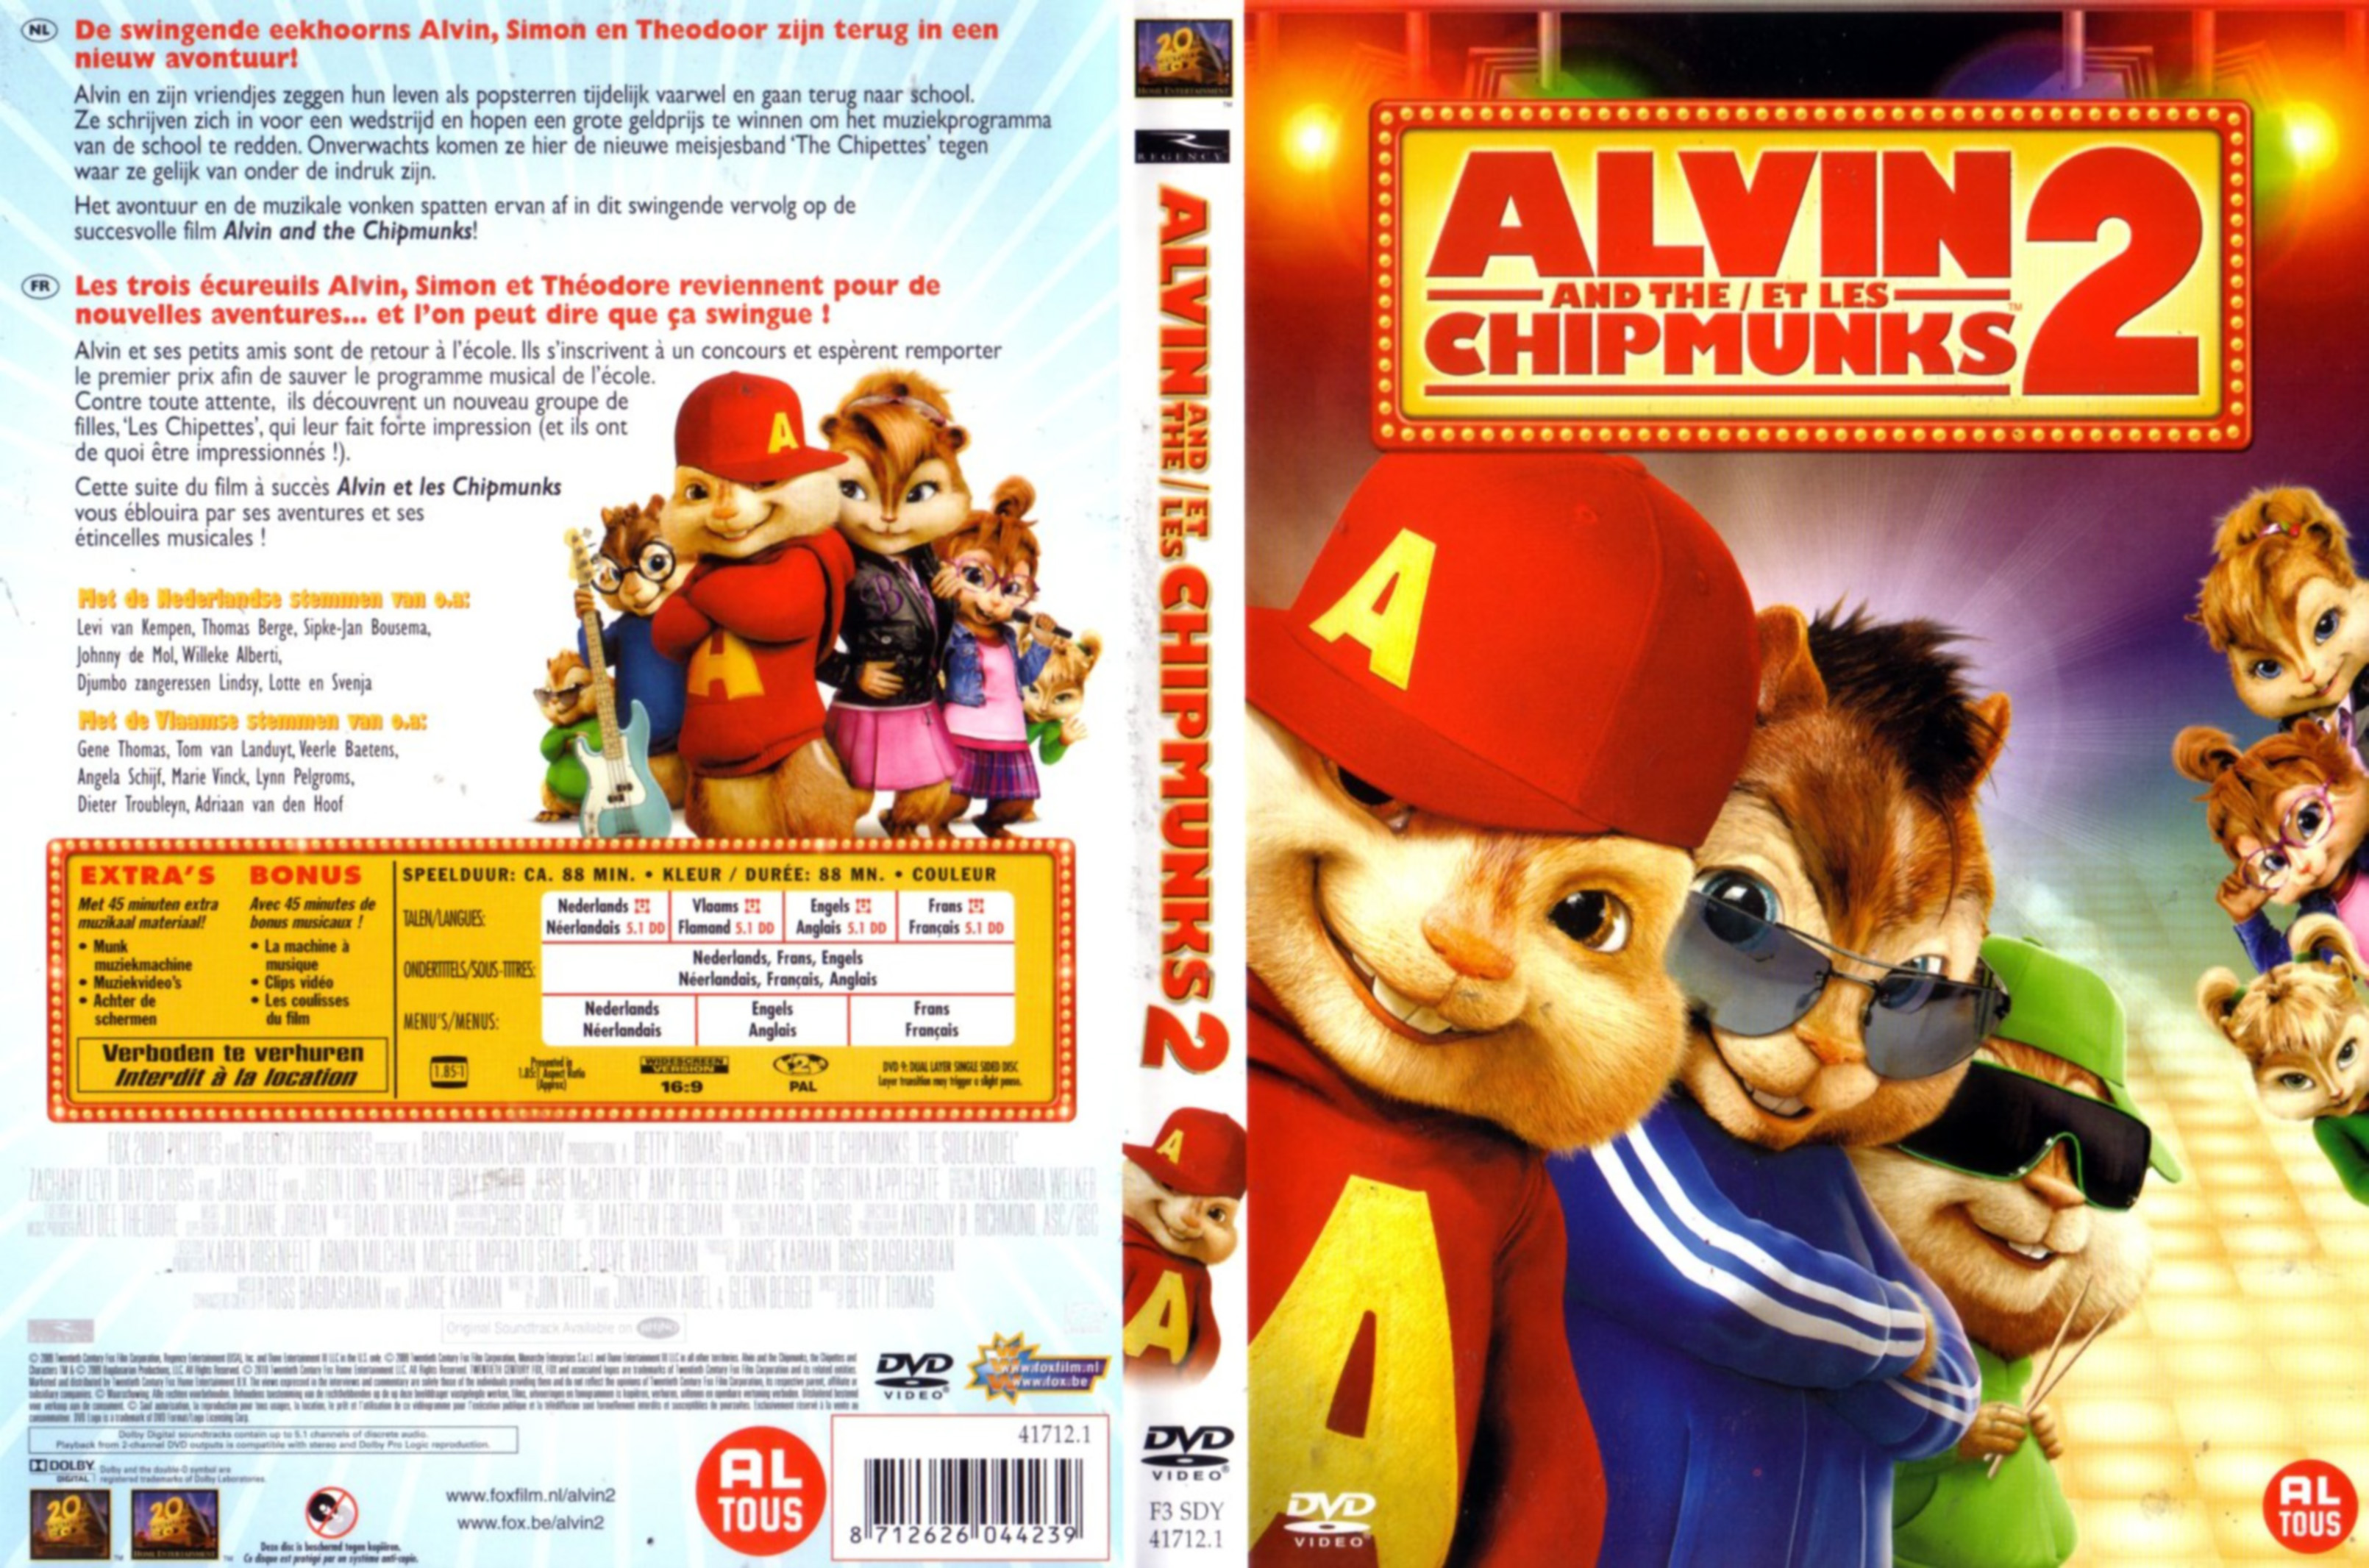 Simon Chipmunk Dvds